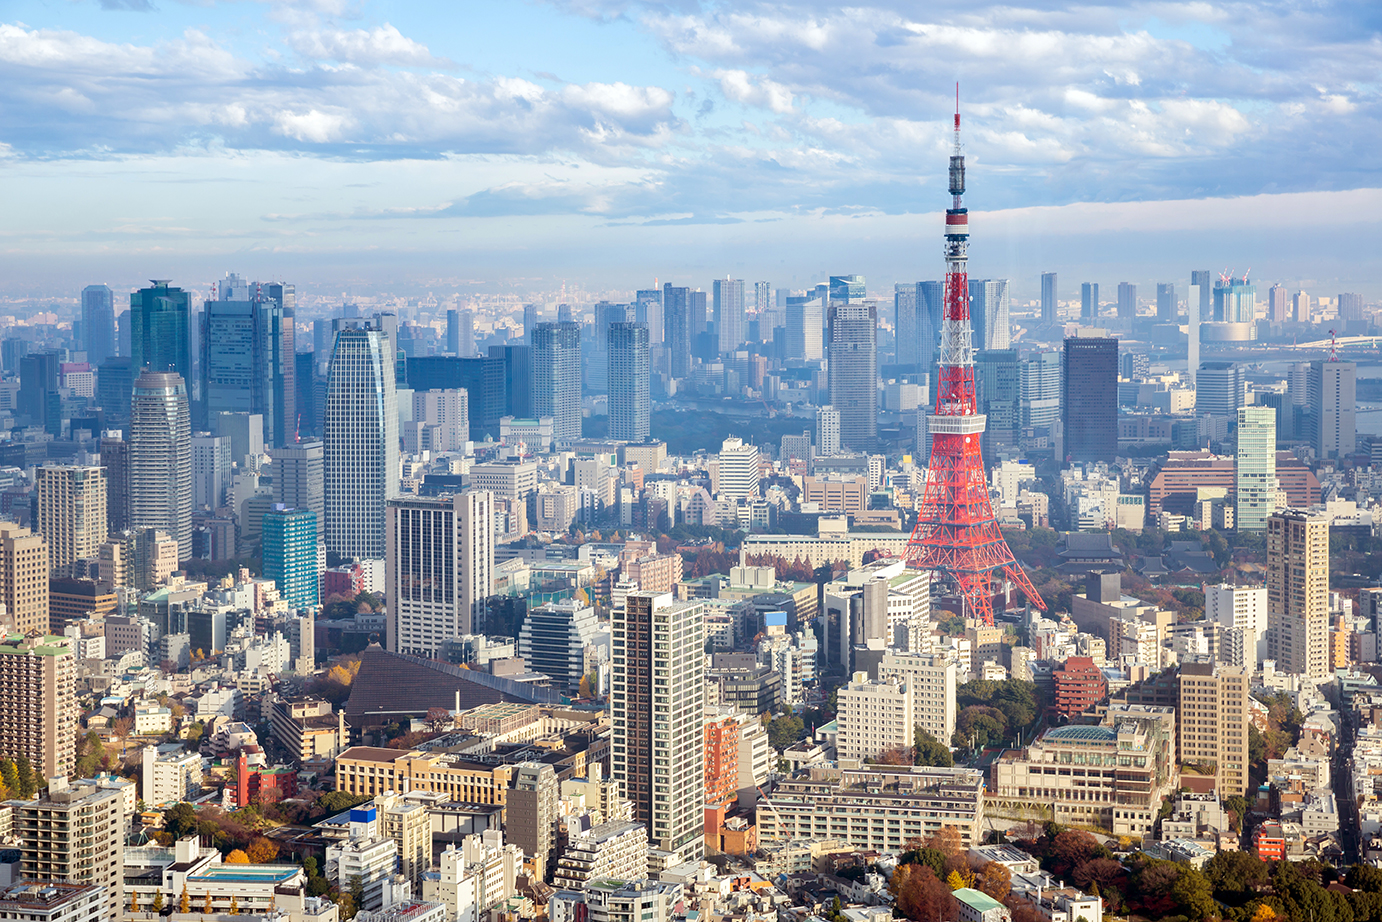 The fund makes its first real estate investments in Asia, acquiring 70 percent of five properties in Tokyo.